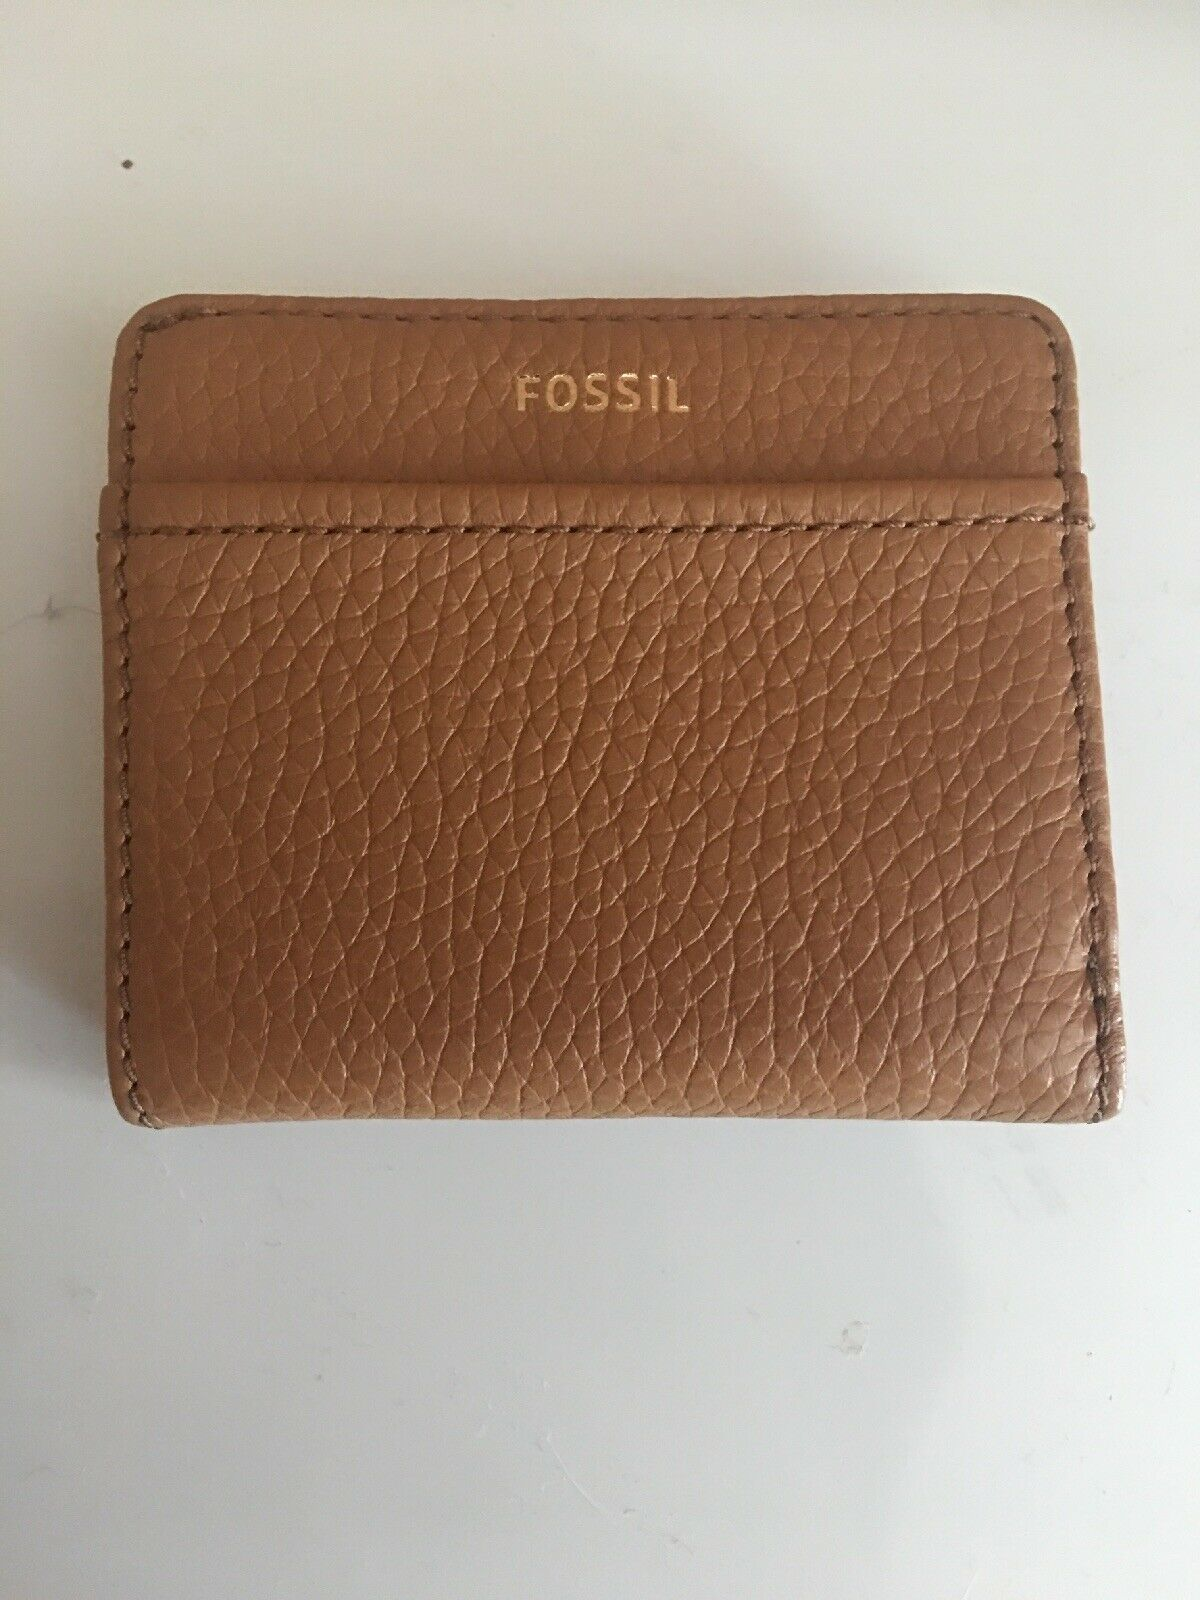 FOSSIL TESSA Leather Bifold Wallet Women's Medium Cognac New NWT image 1